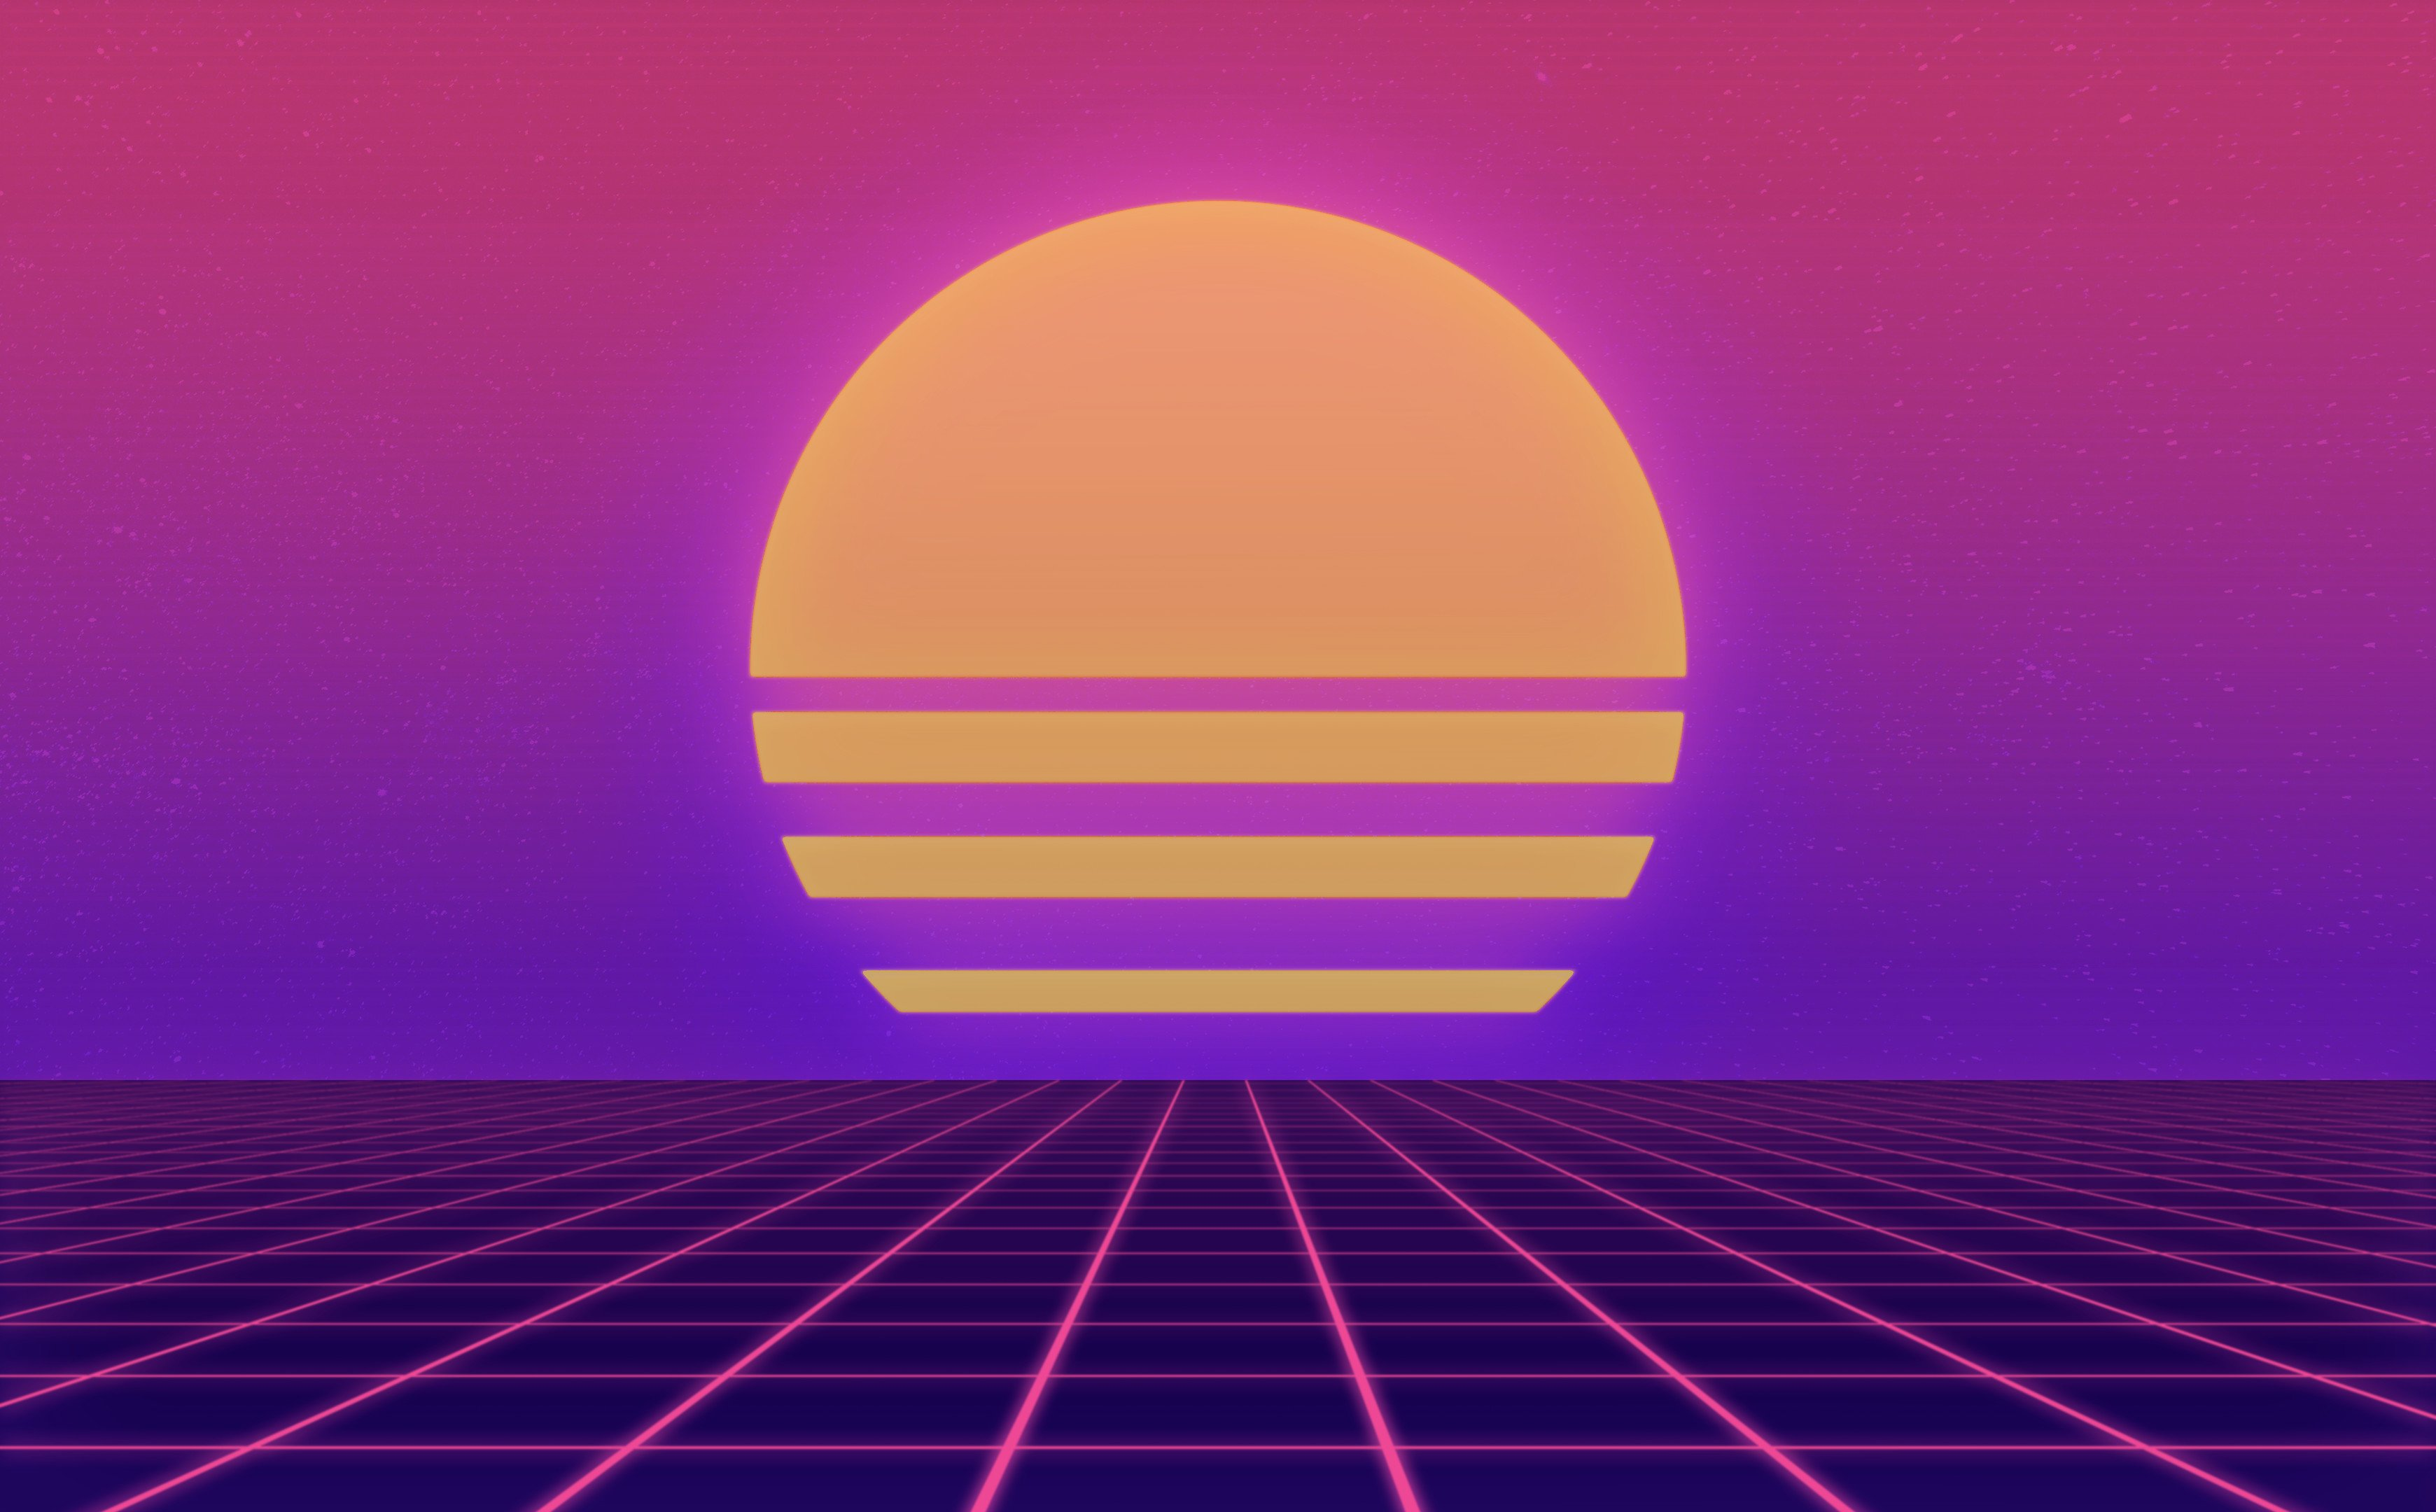 67 Retro 80S Wallpapers on WallpaperPlay 3480x2160